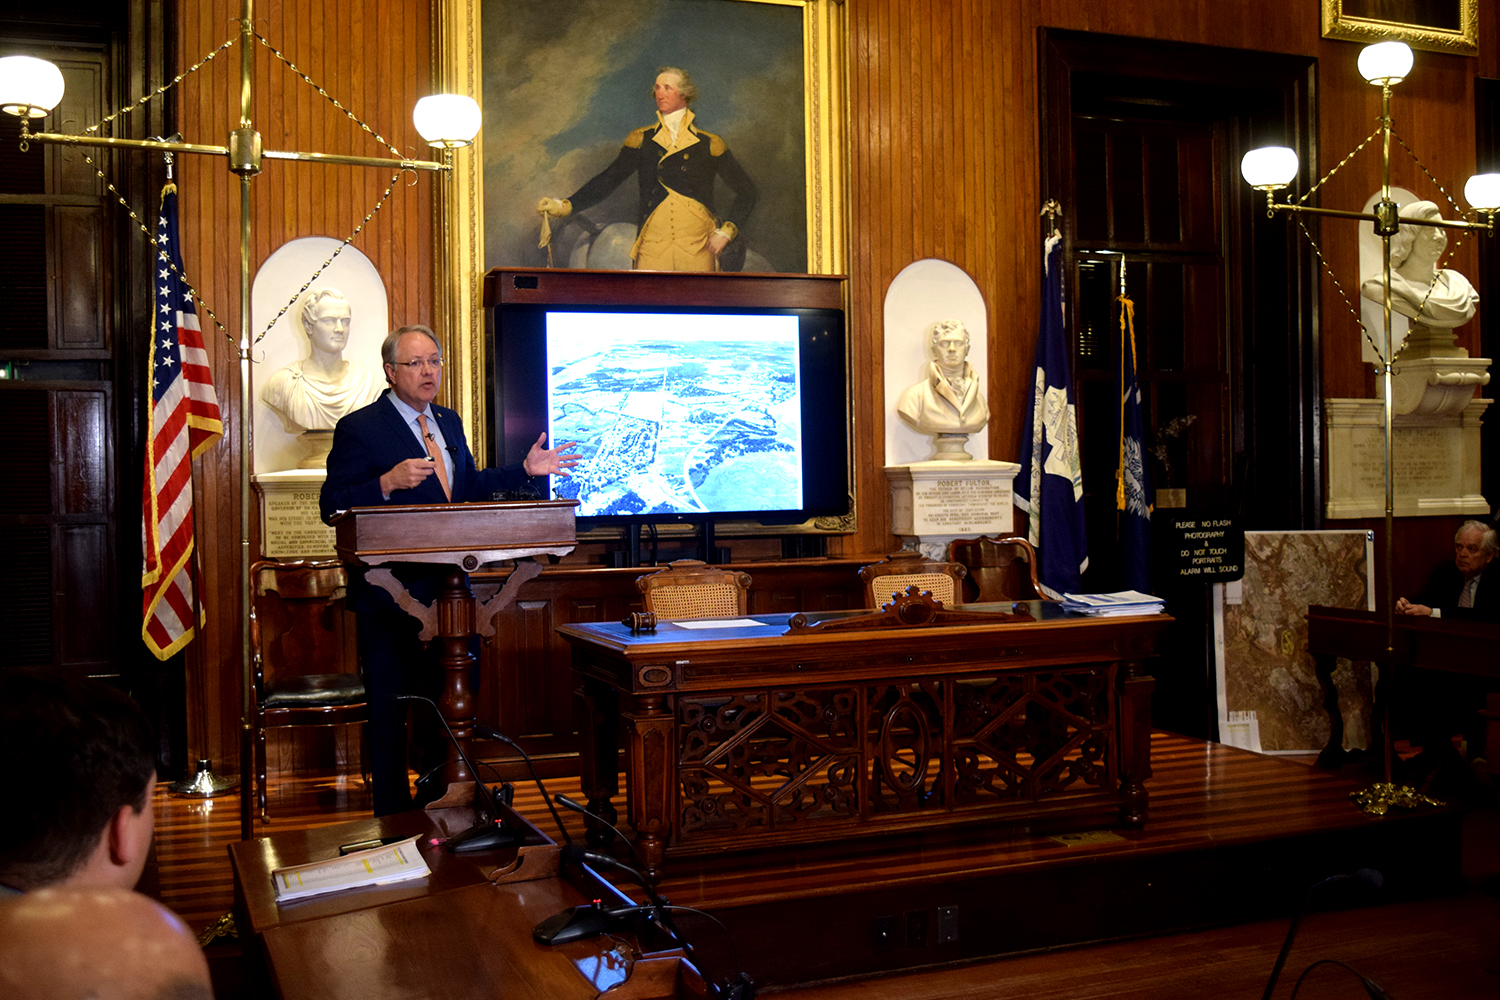 Charleston Mayor John Tecklenburg dedicated the majority of his State of the City address to presenting a strategic plan for dealing with flooding across the city. (Photo/Patrick Hoff)